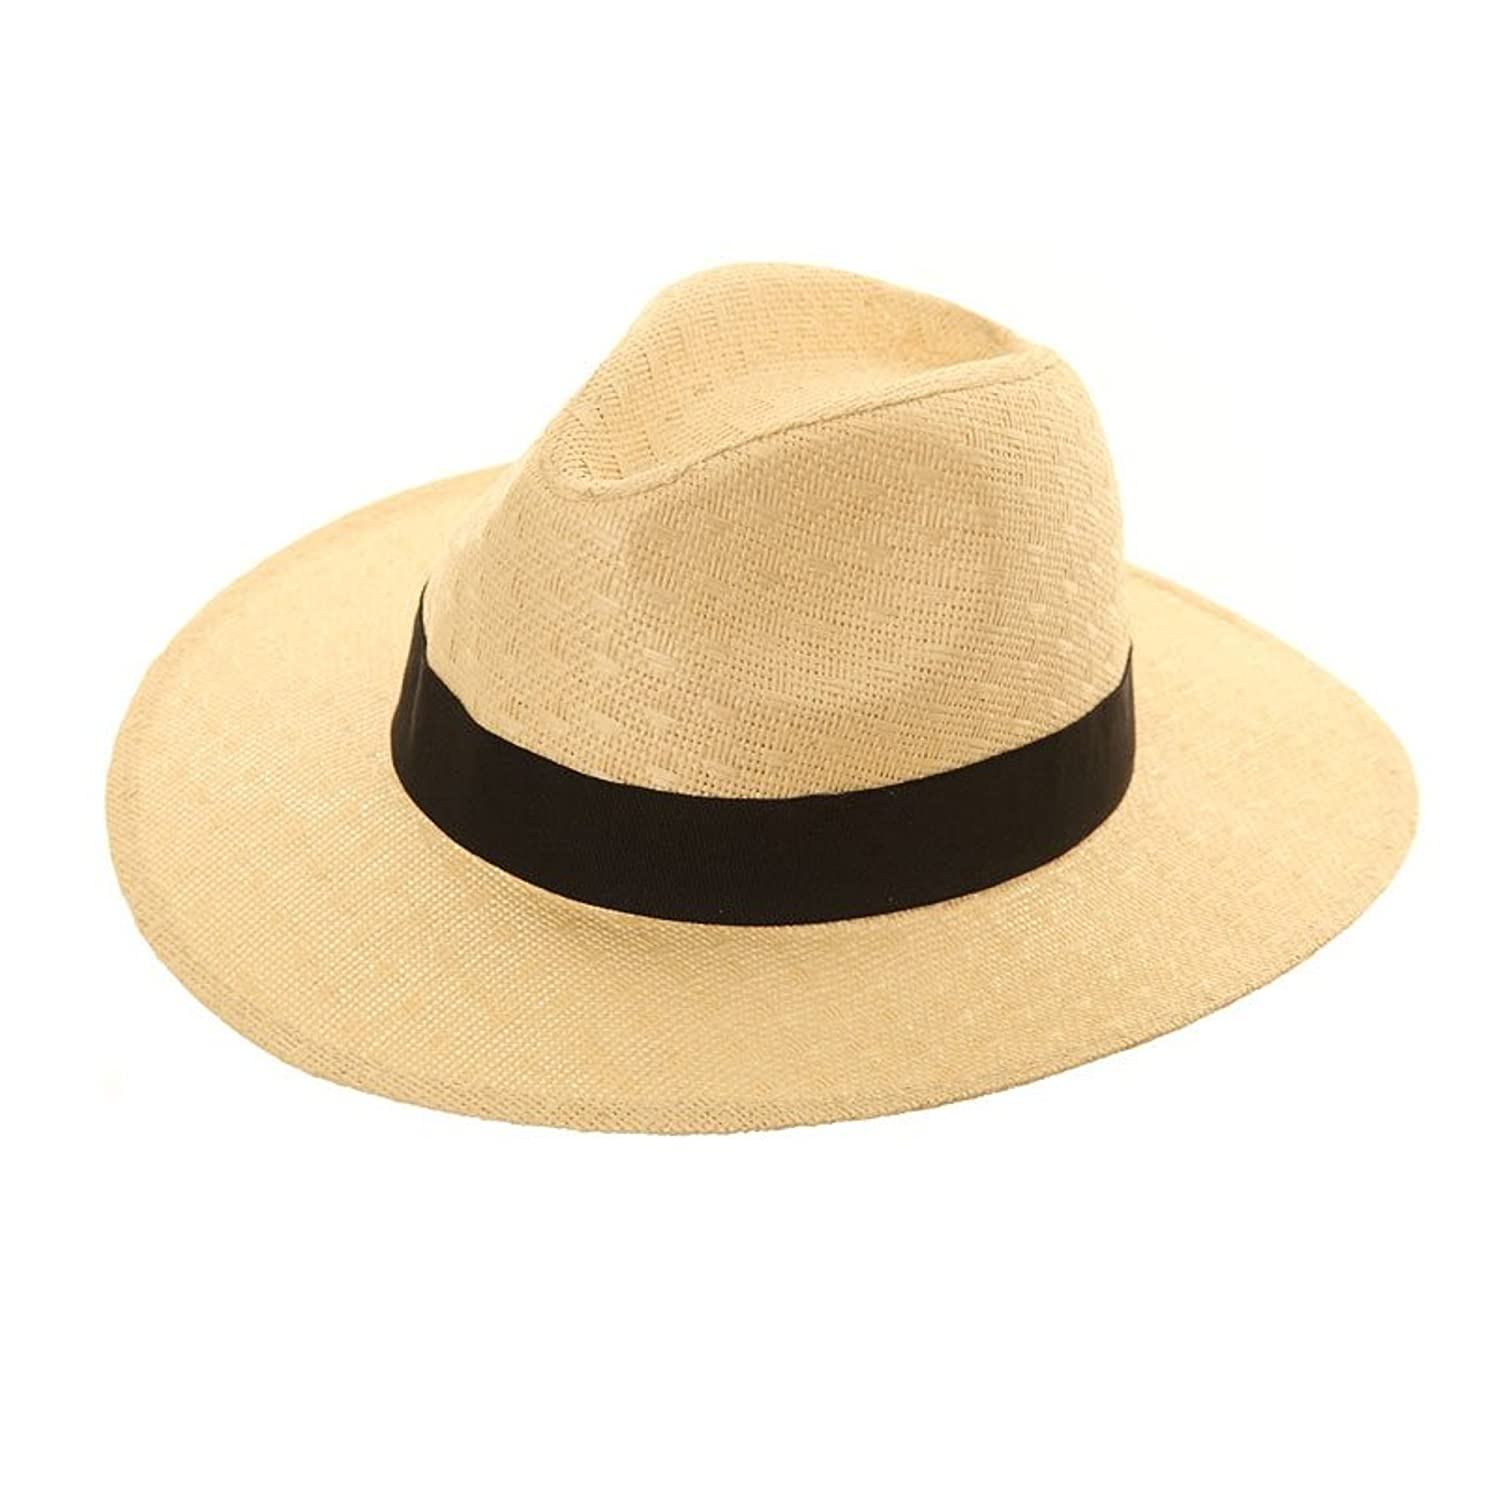 48fe274ee Unisex Straw Crushable Foldable Packable Summer Fedora,Panama Trilby Sun  HAT with Wide Black Band and Wider Brim